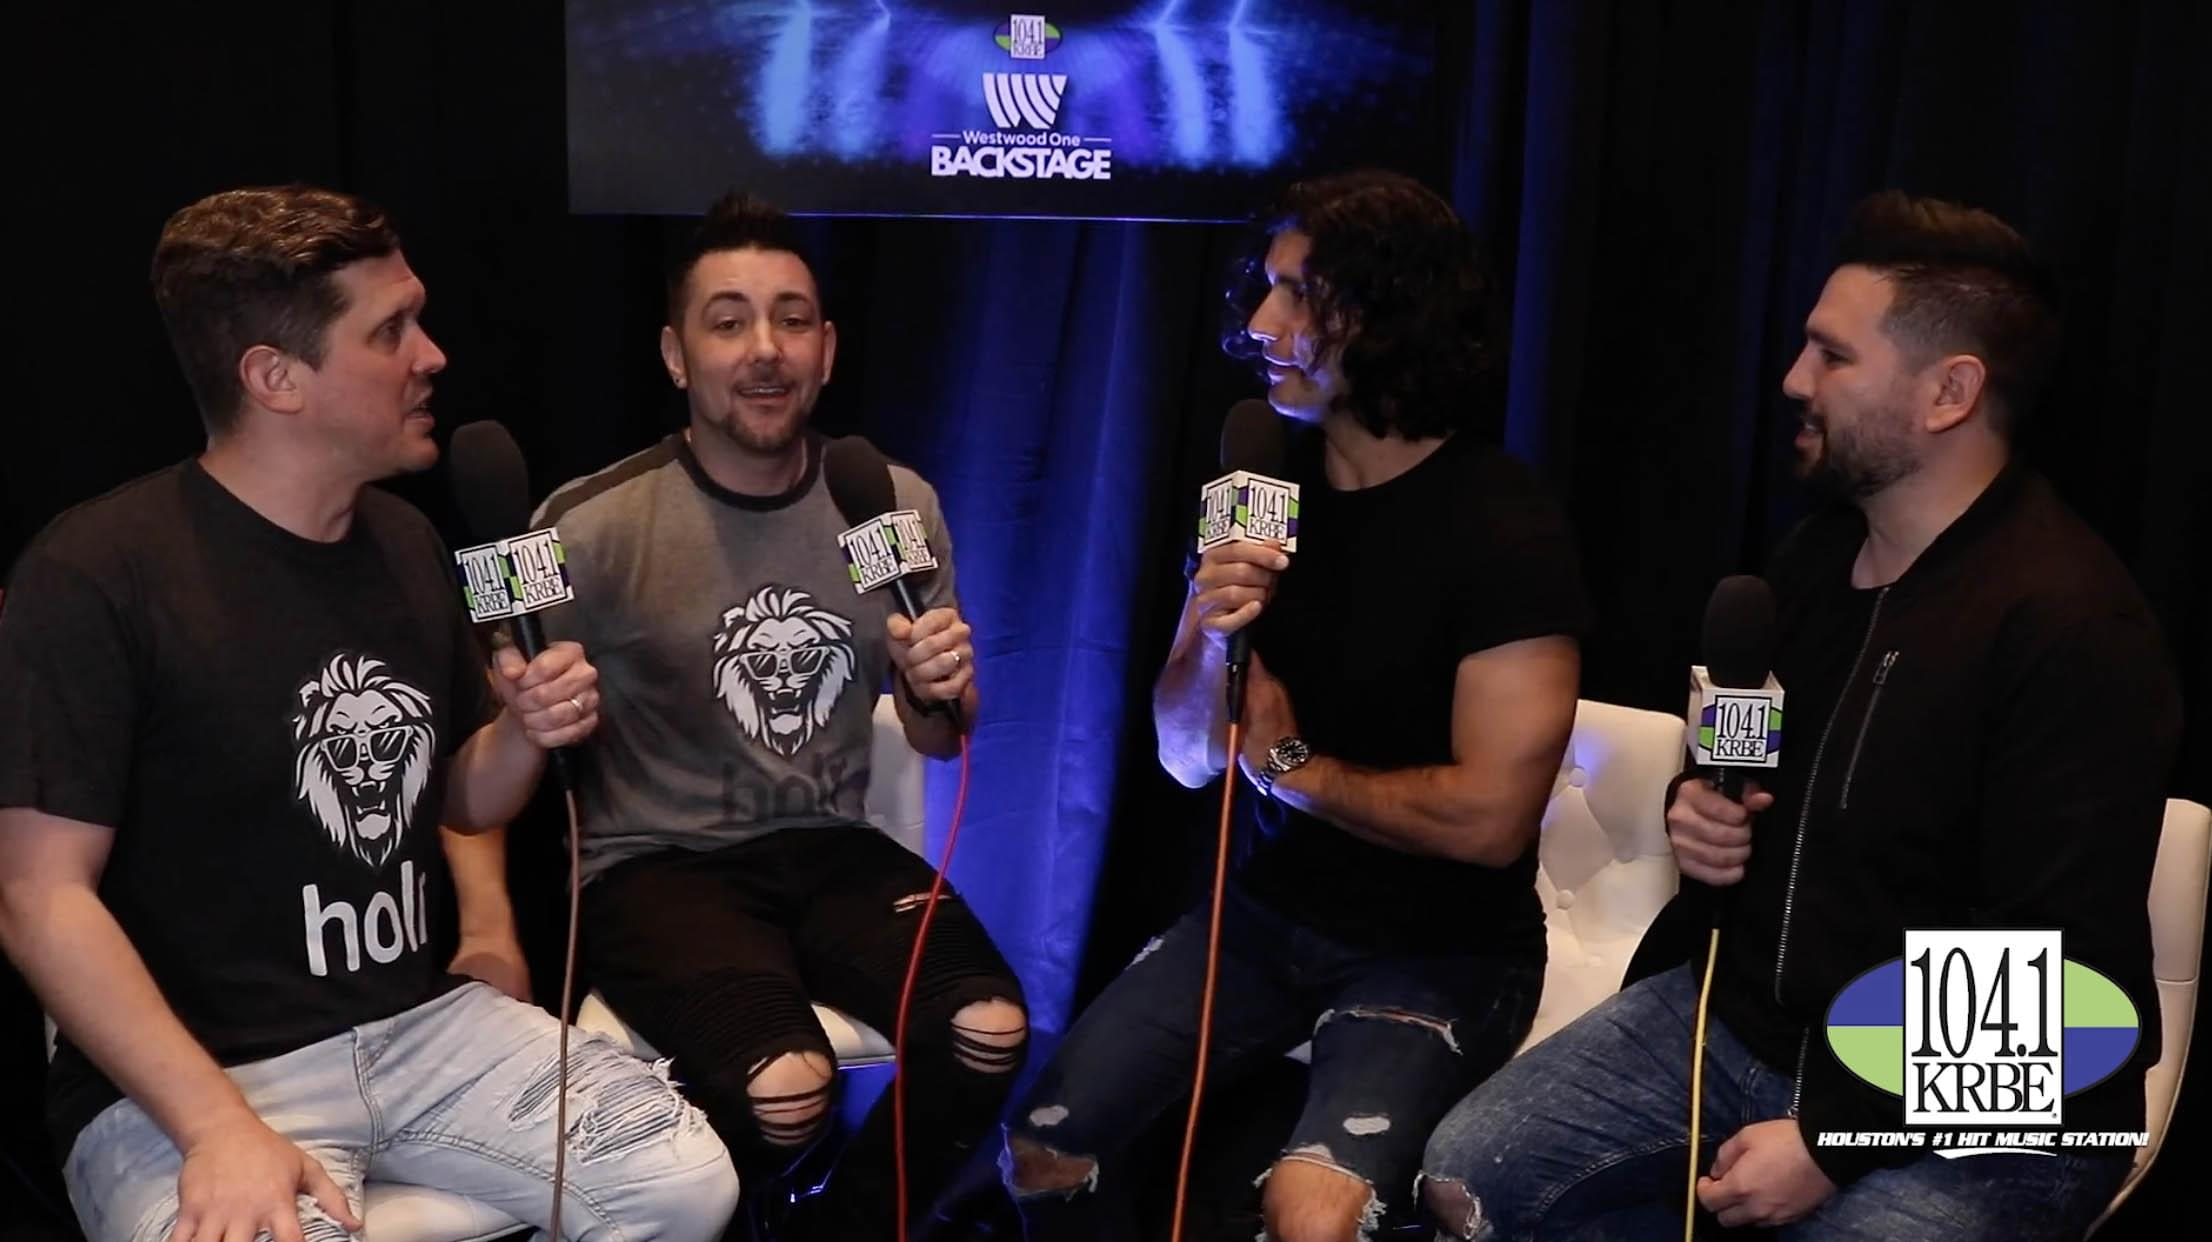 Special K & Kevin Quinn interview Dan & Shay at the 2019 BBMAs